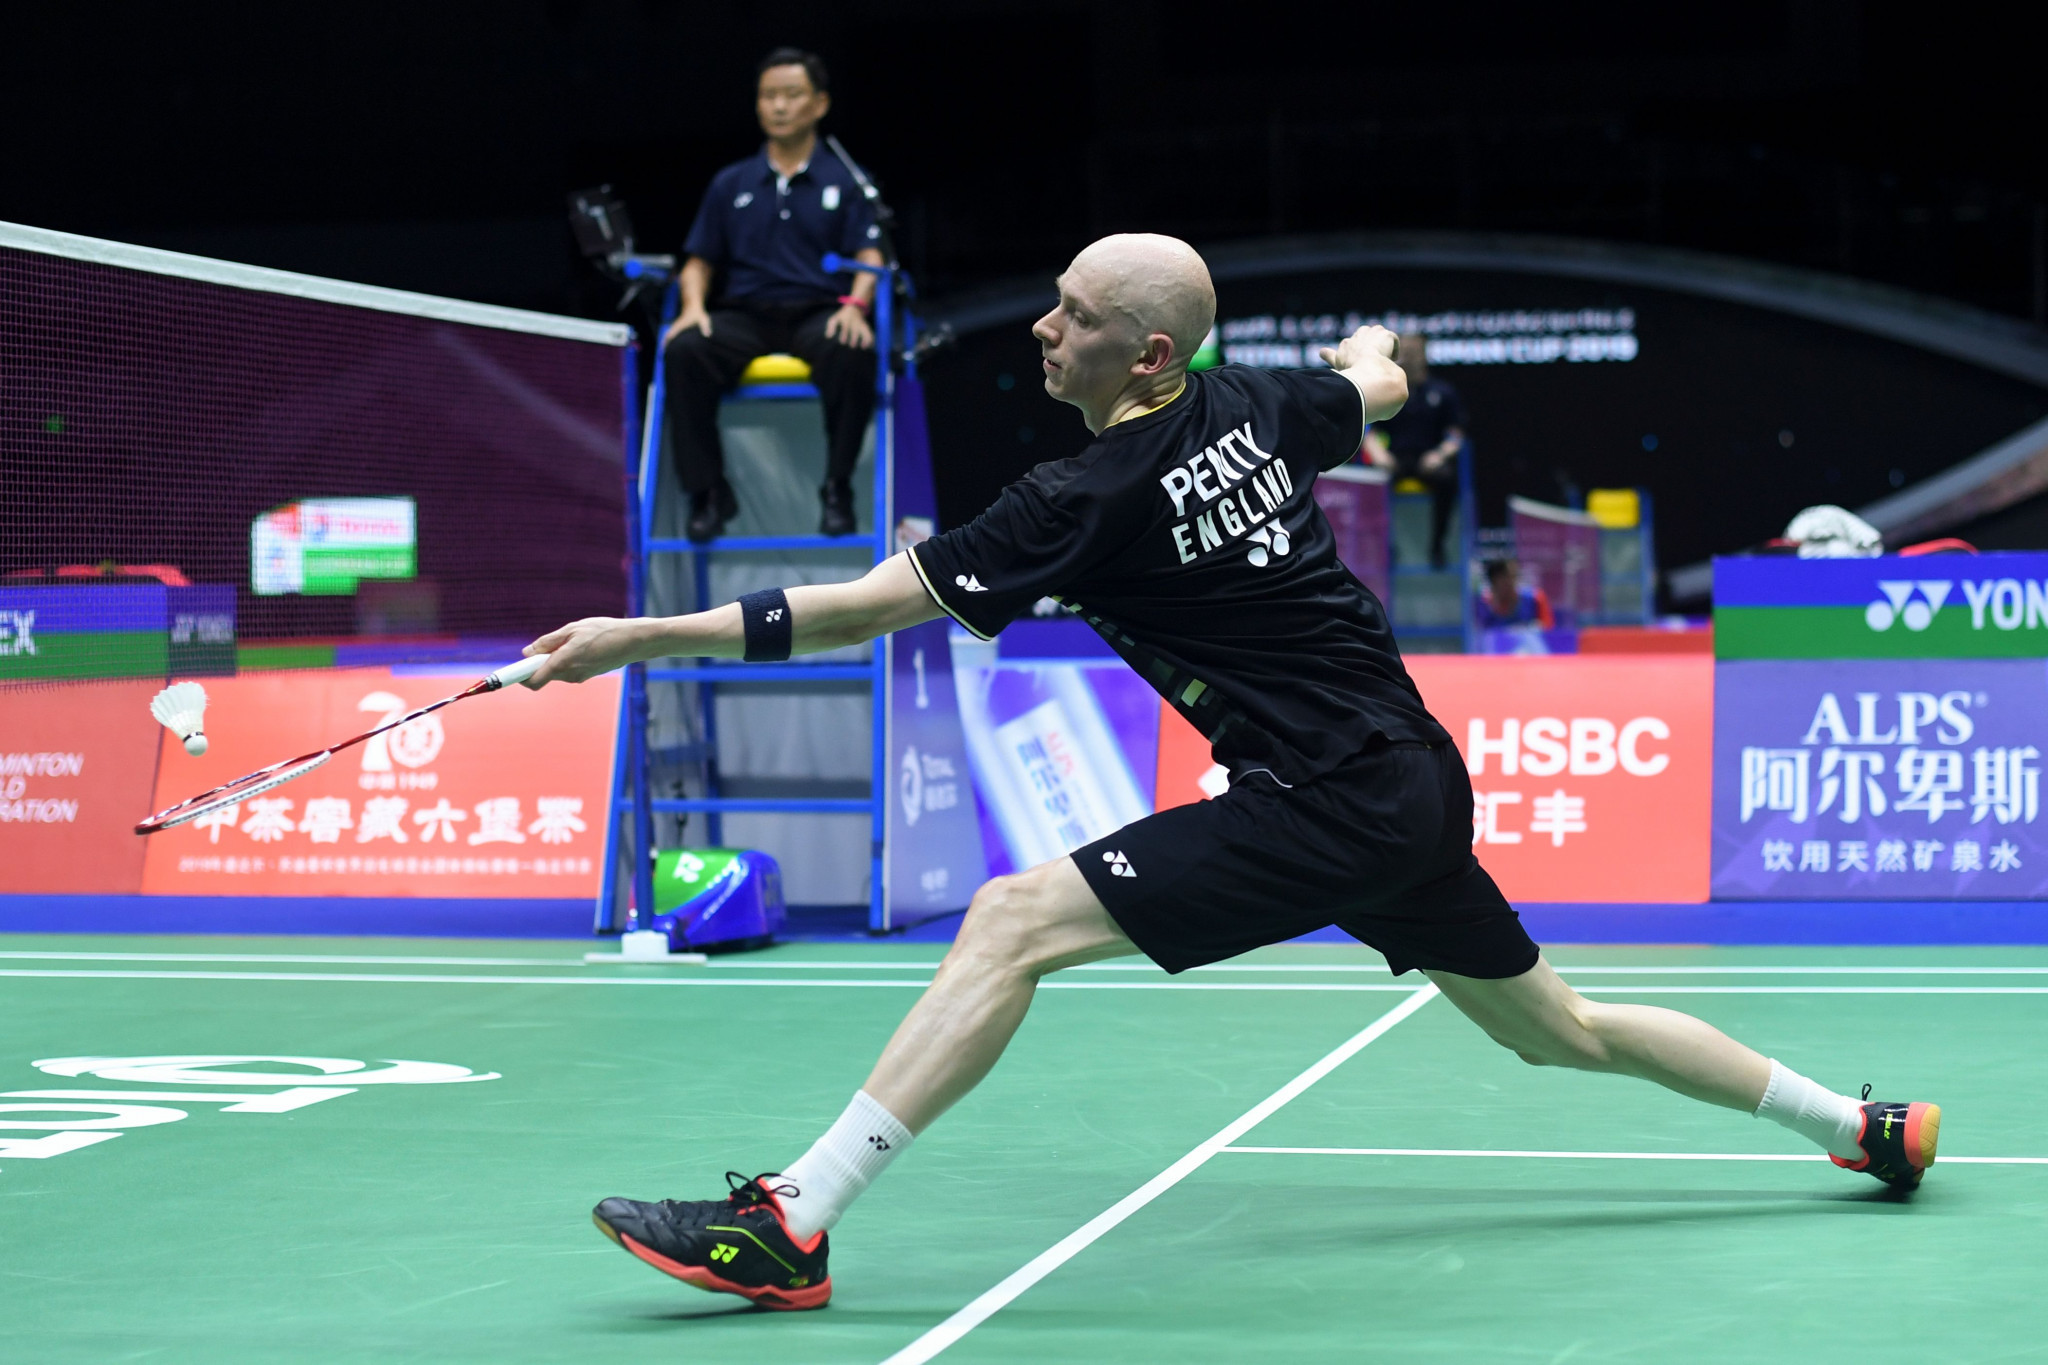 England withdraws just three days from start of Thomas Cup due to player injuries